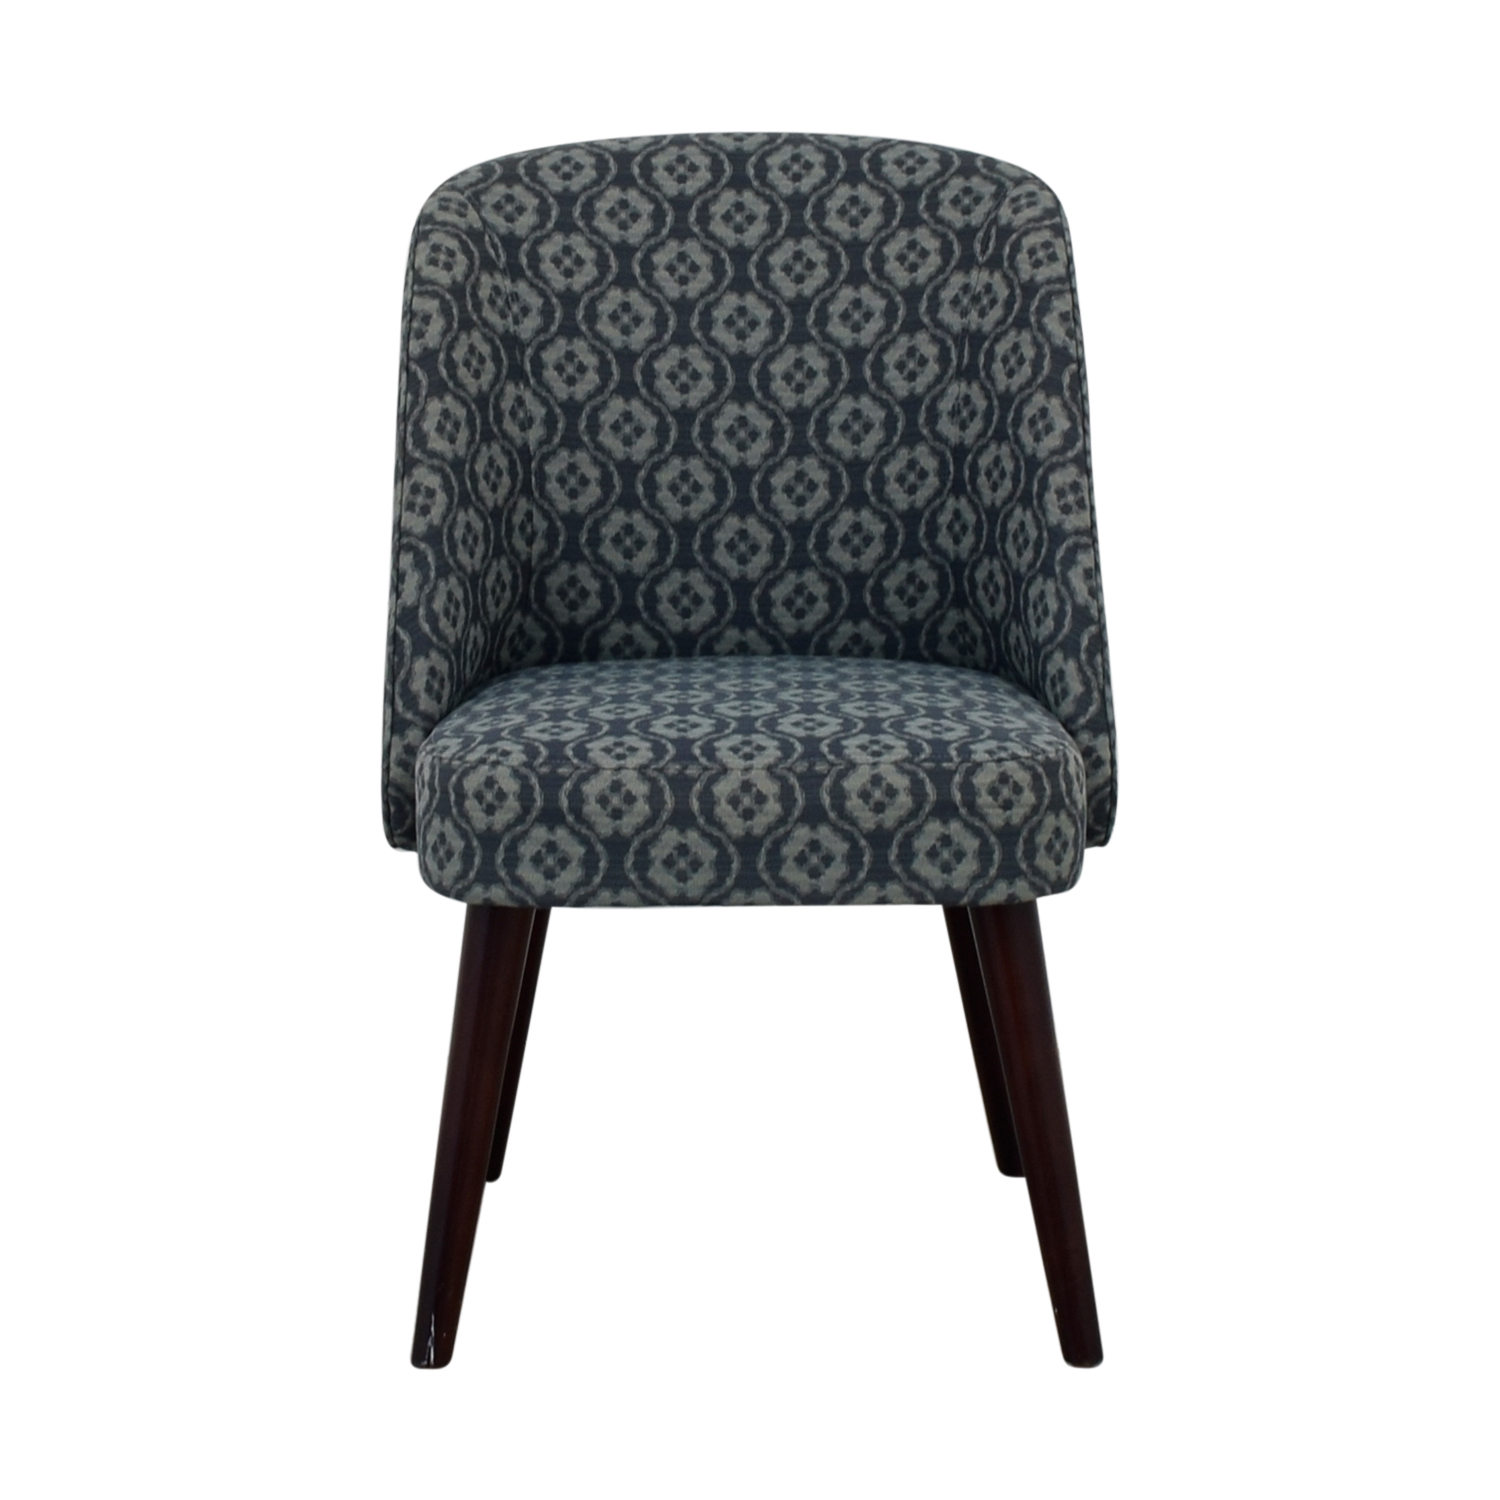 Blue Patterned Chair 83 Off Patterned Blue Accent Chair Chairs